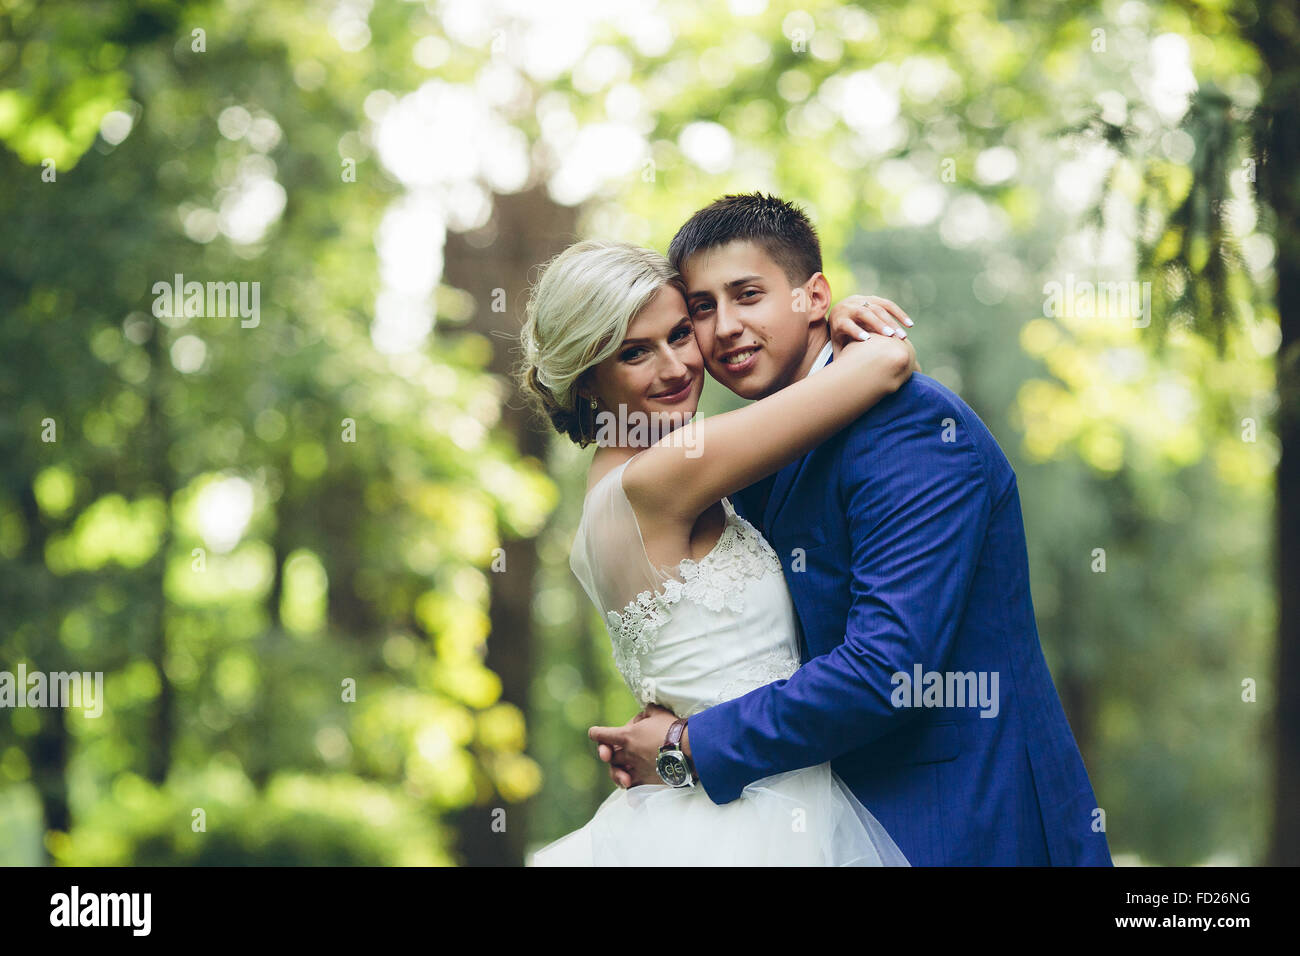 Beautiful wedding couple hugging in the park - Stock Image